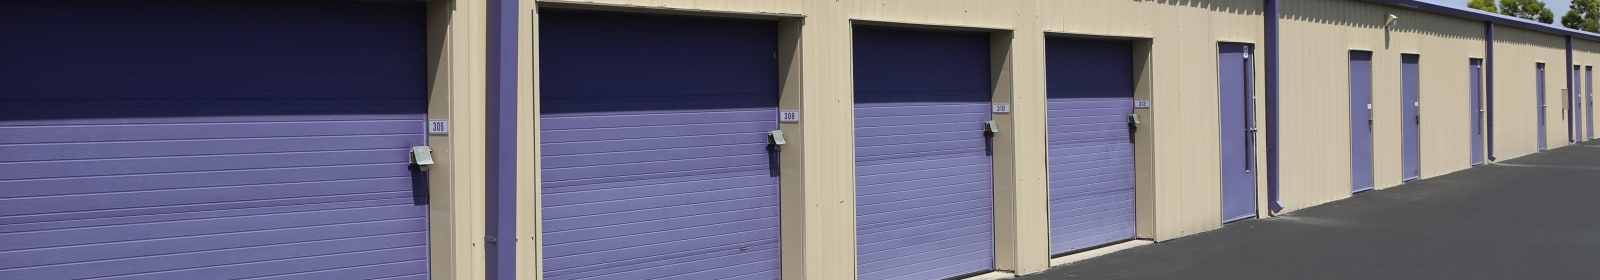 Contact Midgard Self Storage in Bradenton, Florida